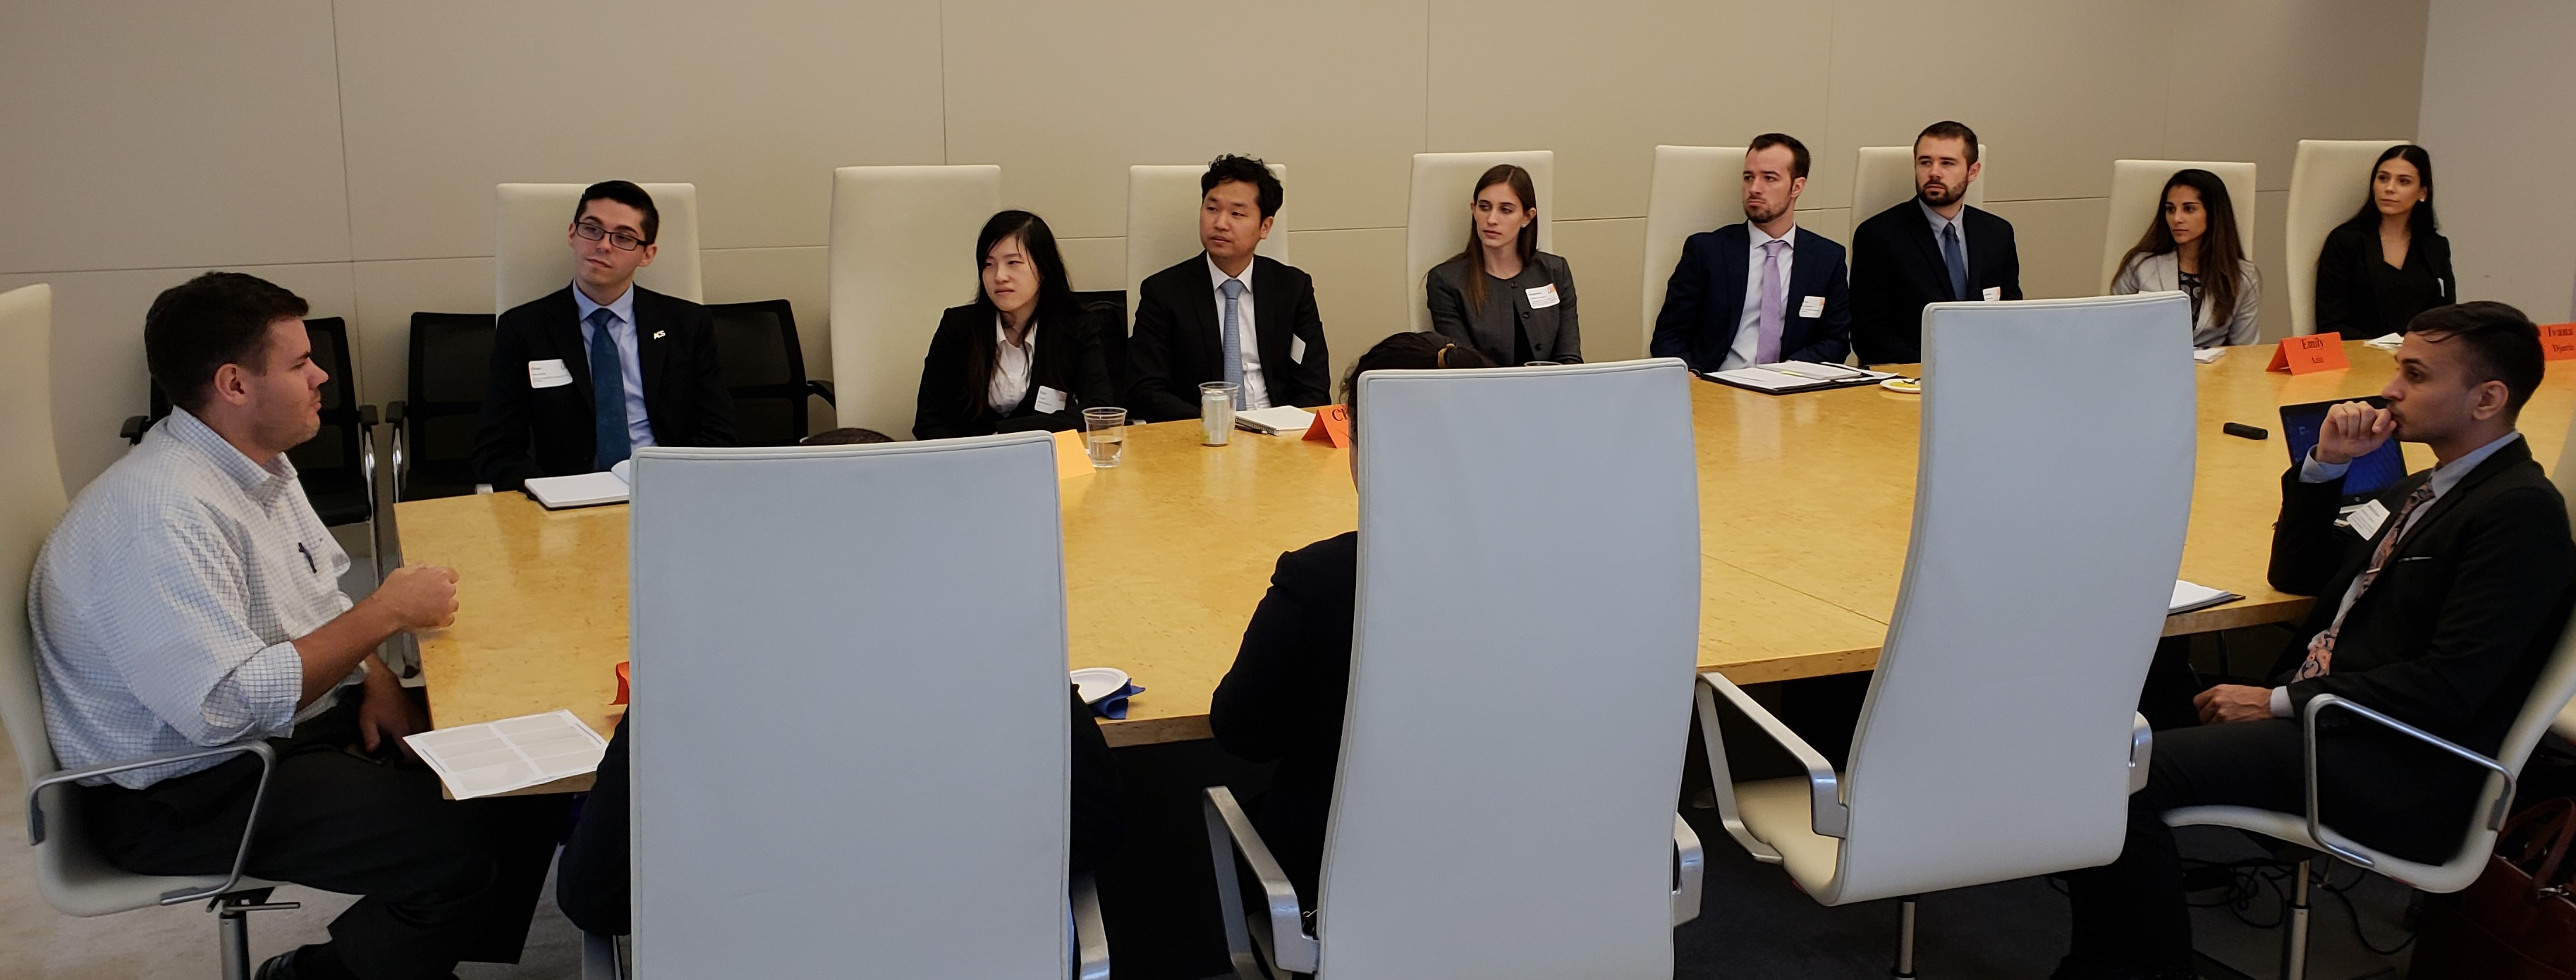 DC extern students hear from Brad Jorgensen L'06, a Partner with DLA Piper